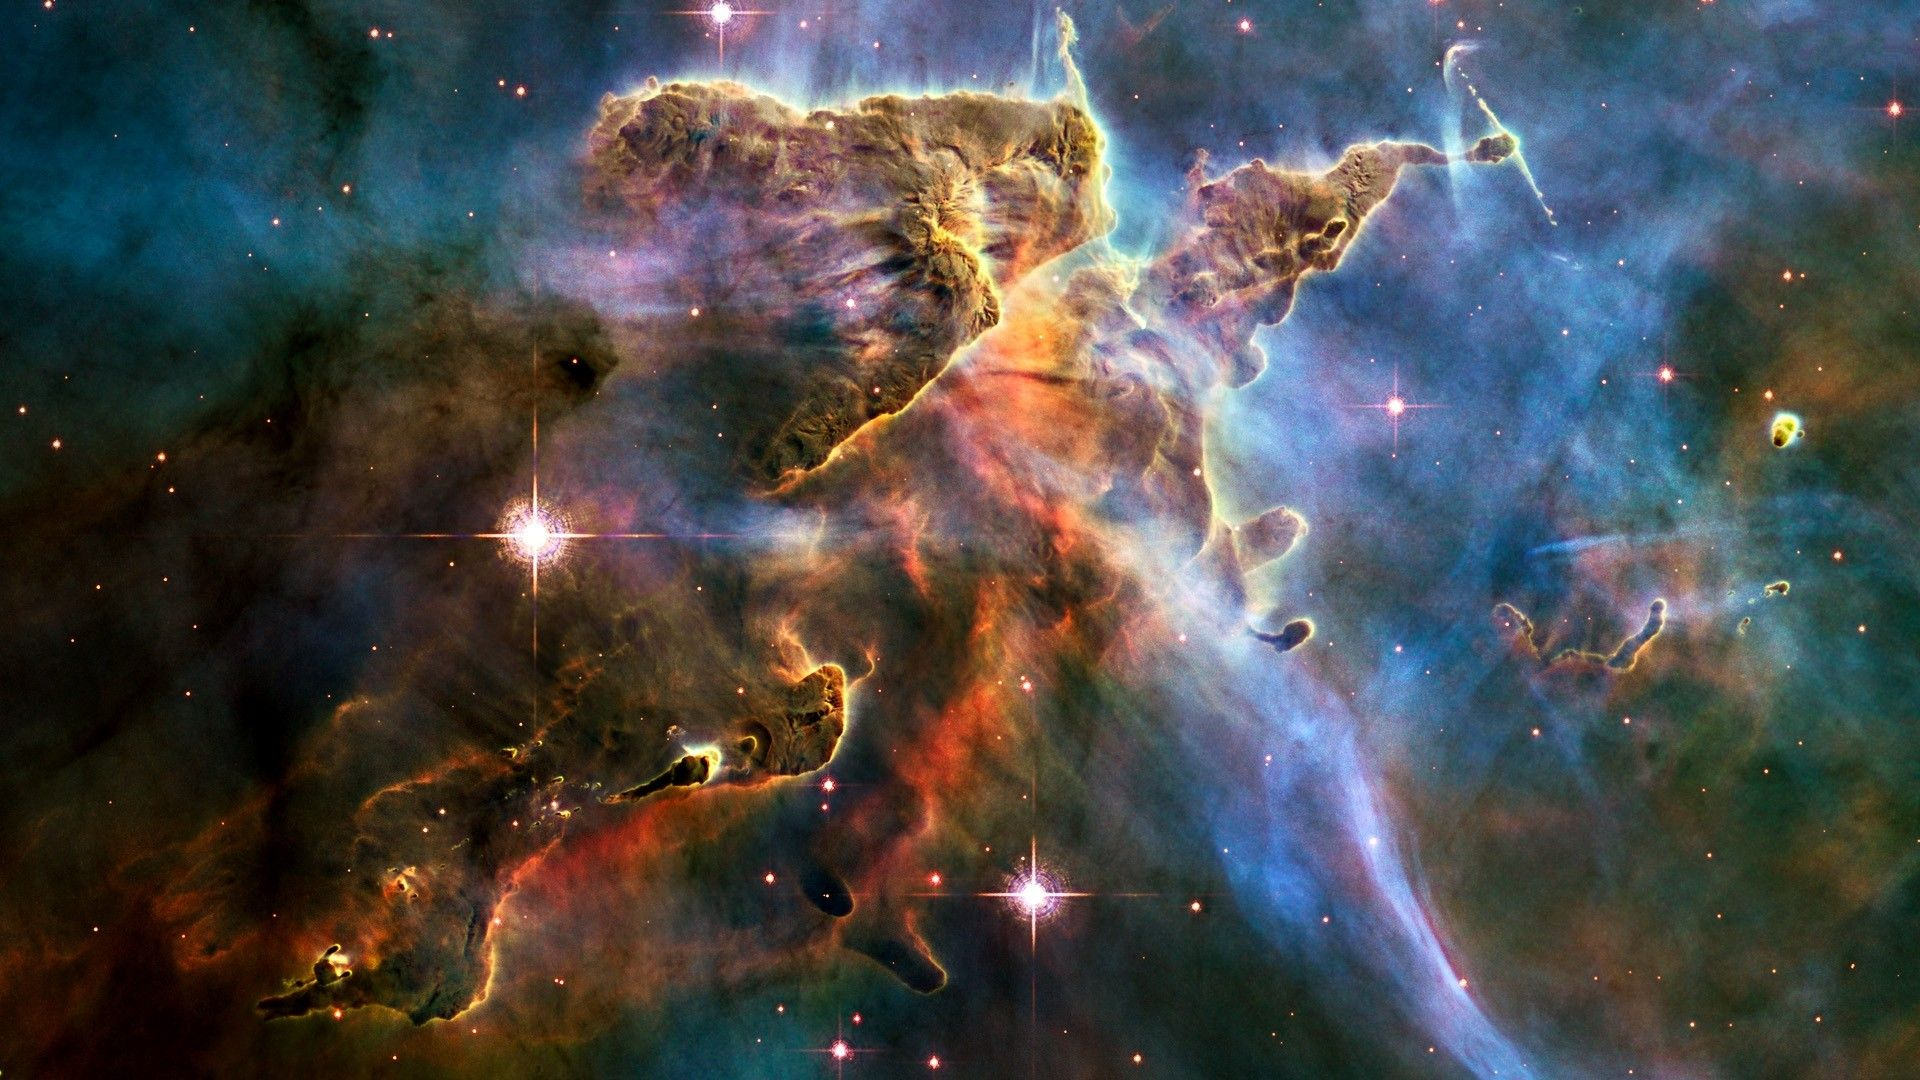 Pillars Of Creation Hubble Wallpapers Top Free Pillars Of Creation Hubble Backgrounds Wallpaperaccess